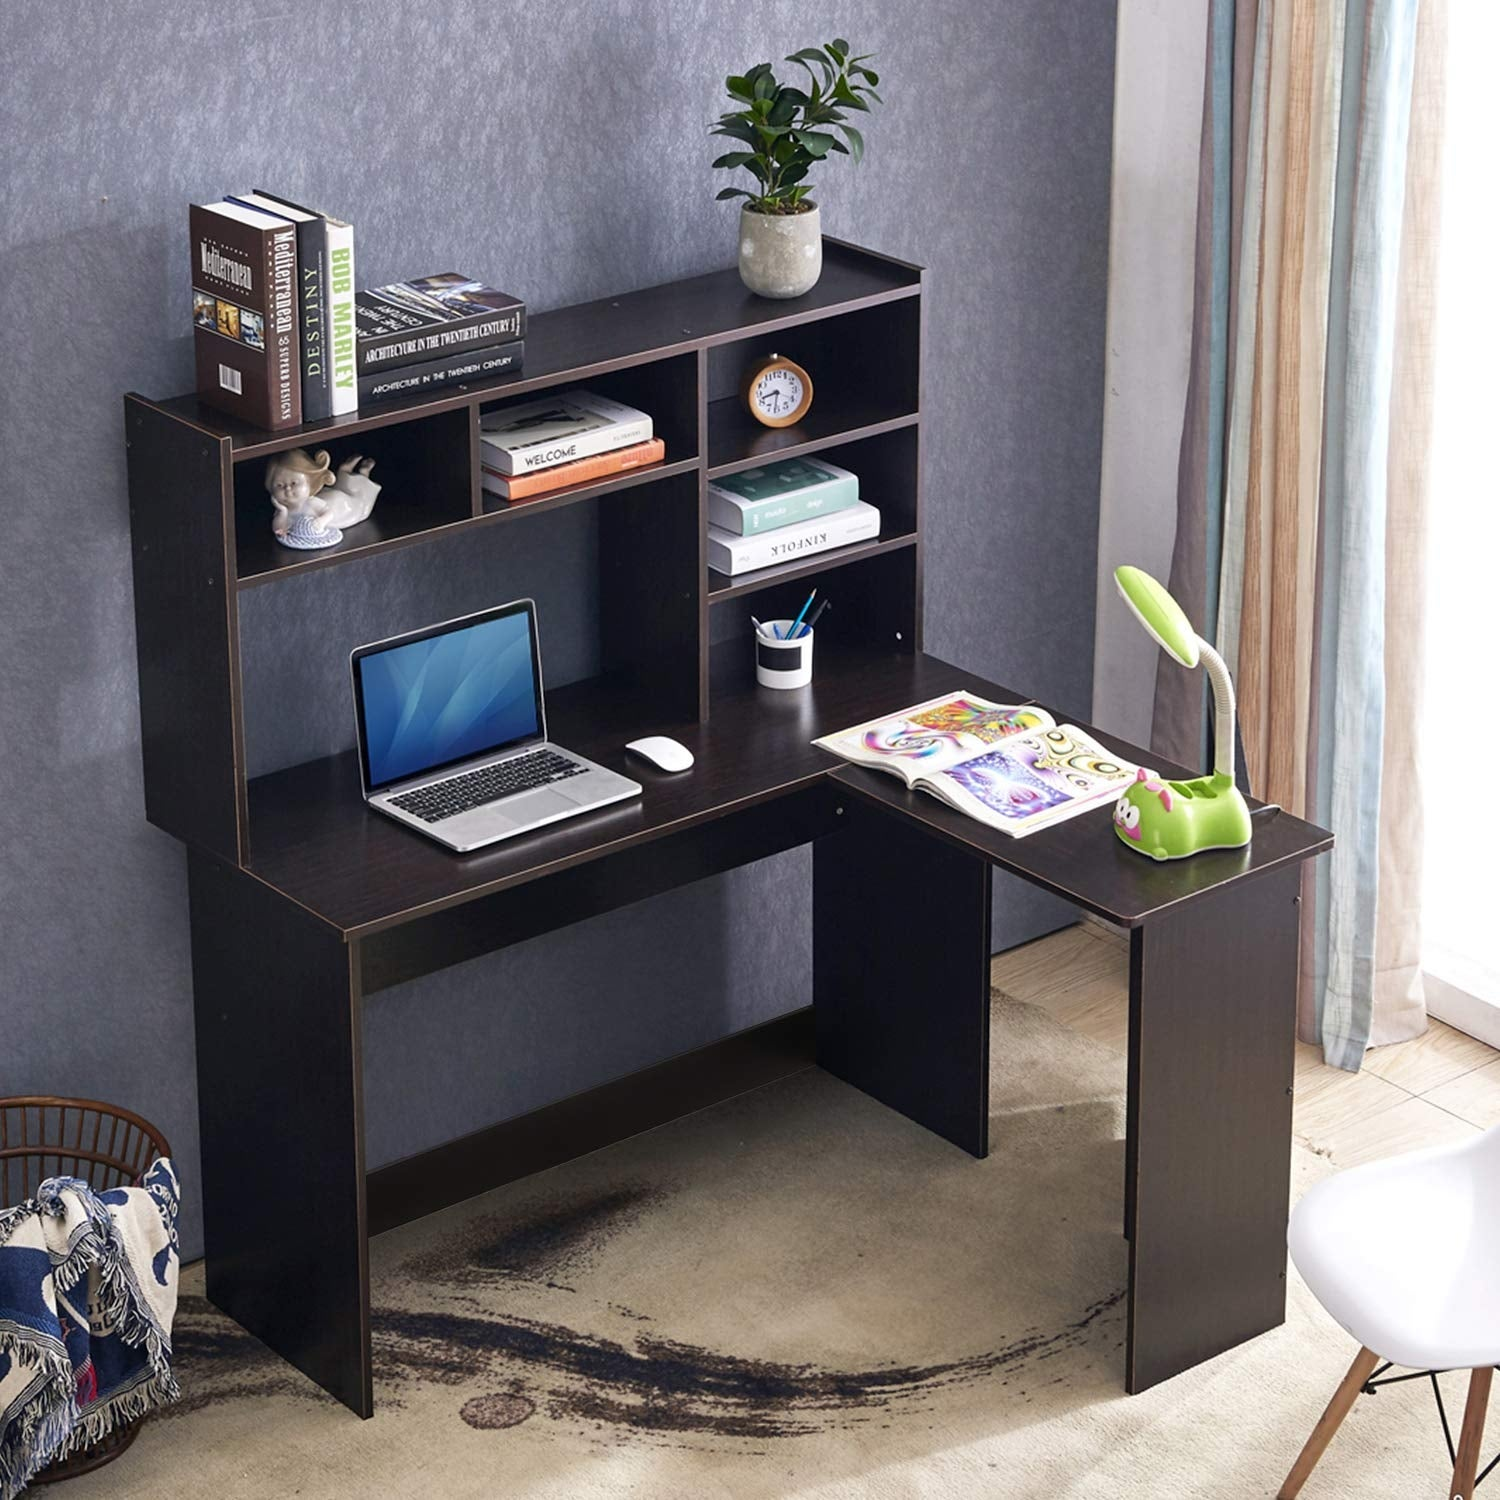 Shop Mcombo Modern Computer Desk With Hutch L Shaped Gaming Desk Corner Desk With Shelves For Small Space Home Office Overstock 30386723,Best Home Decor Pinterest Boards